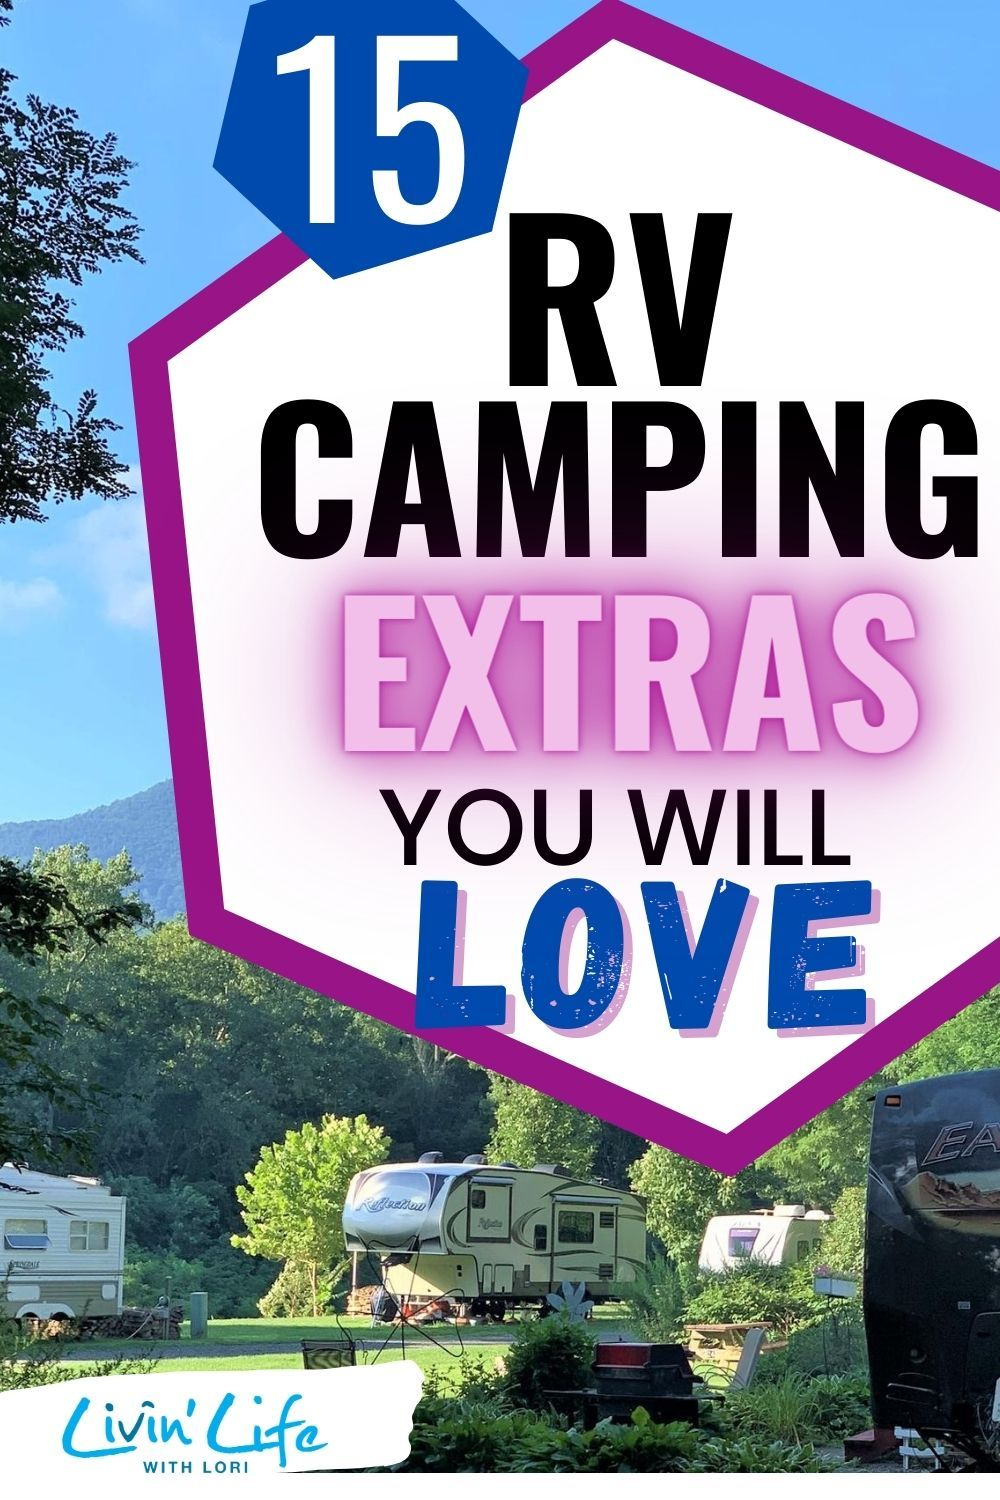 Rv Camping Must Have Extras That Will Make You A Happy Camper Livin Life With Lori Rv Life Travel Outdoor Adventures In 2020 Rv Camping Camping Must Haves Happy Campers